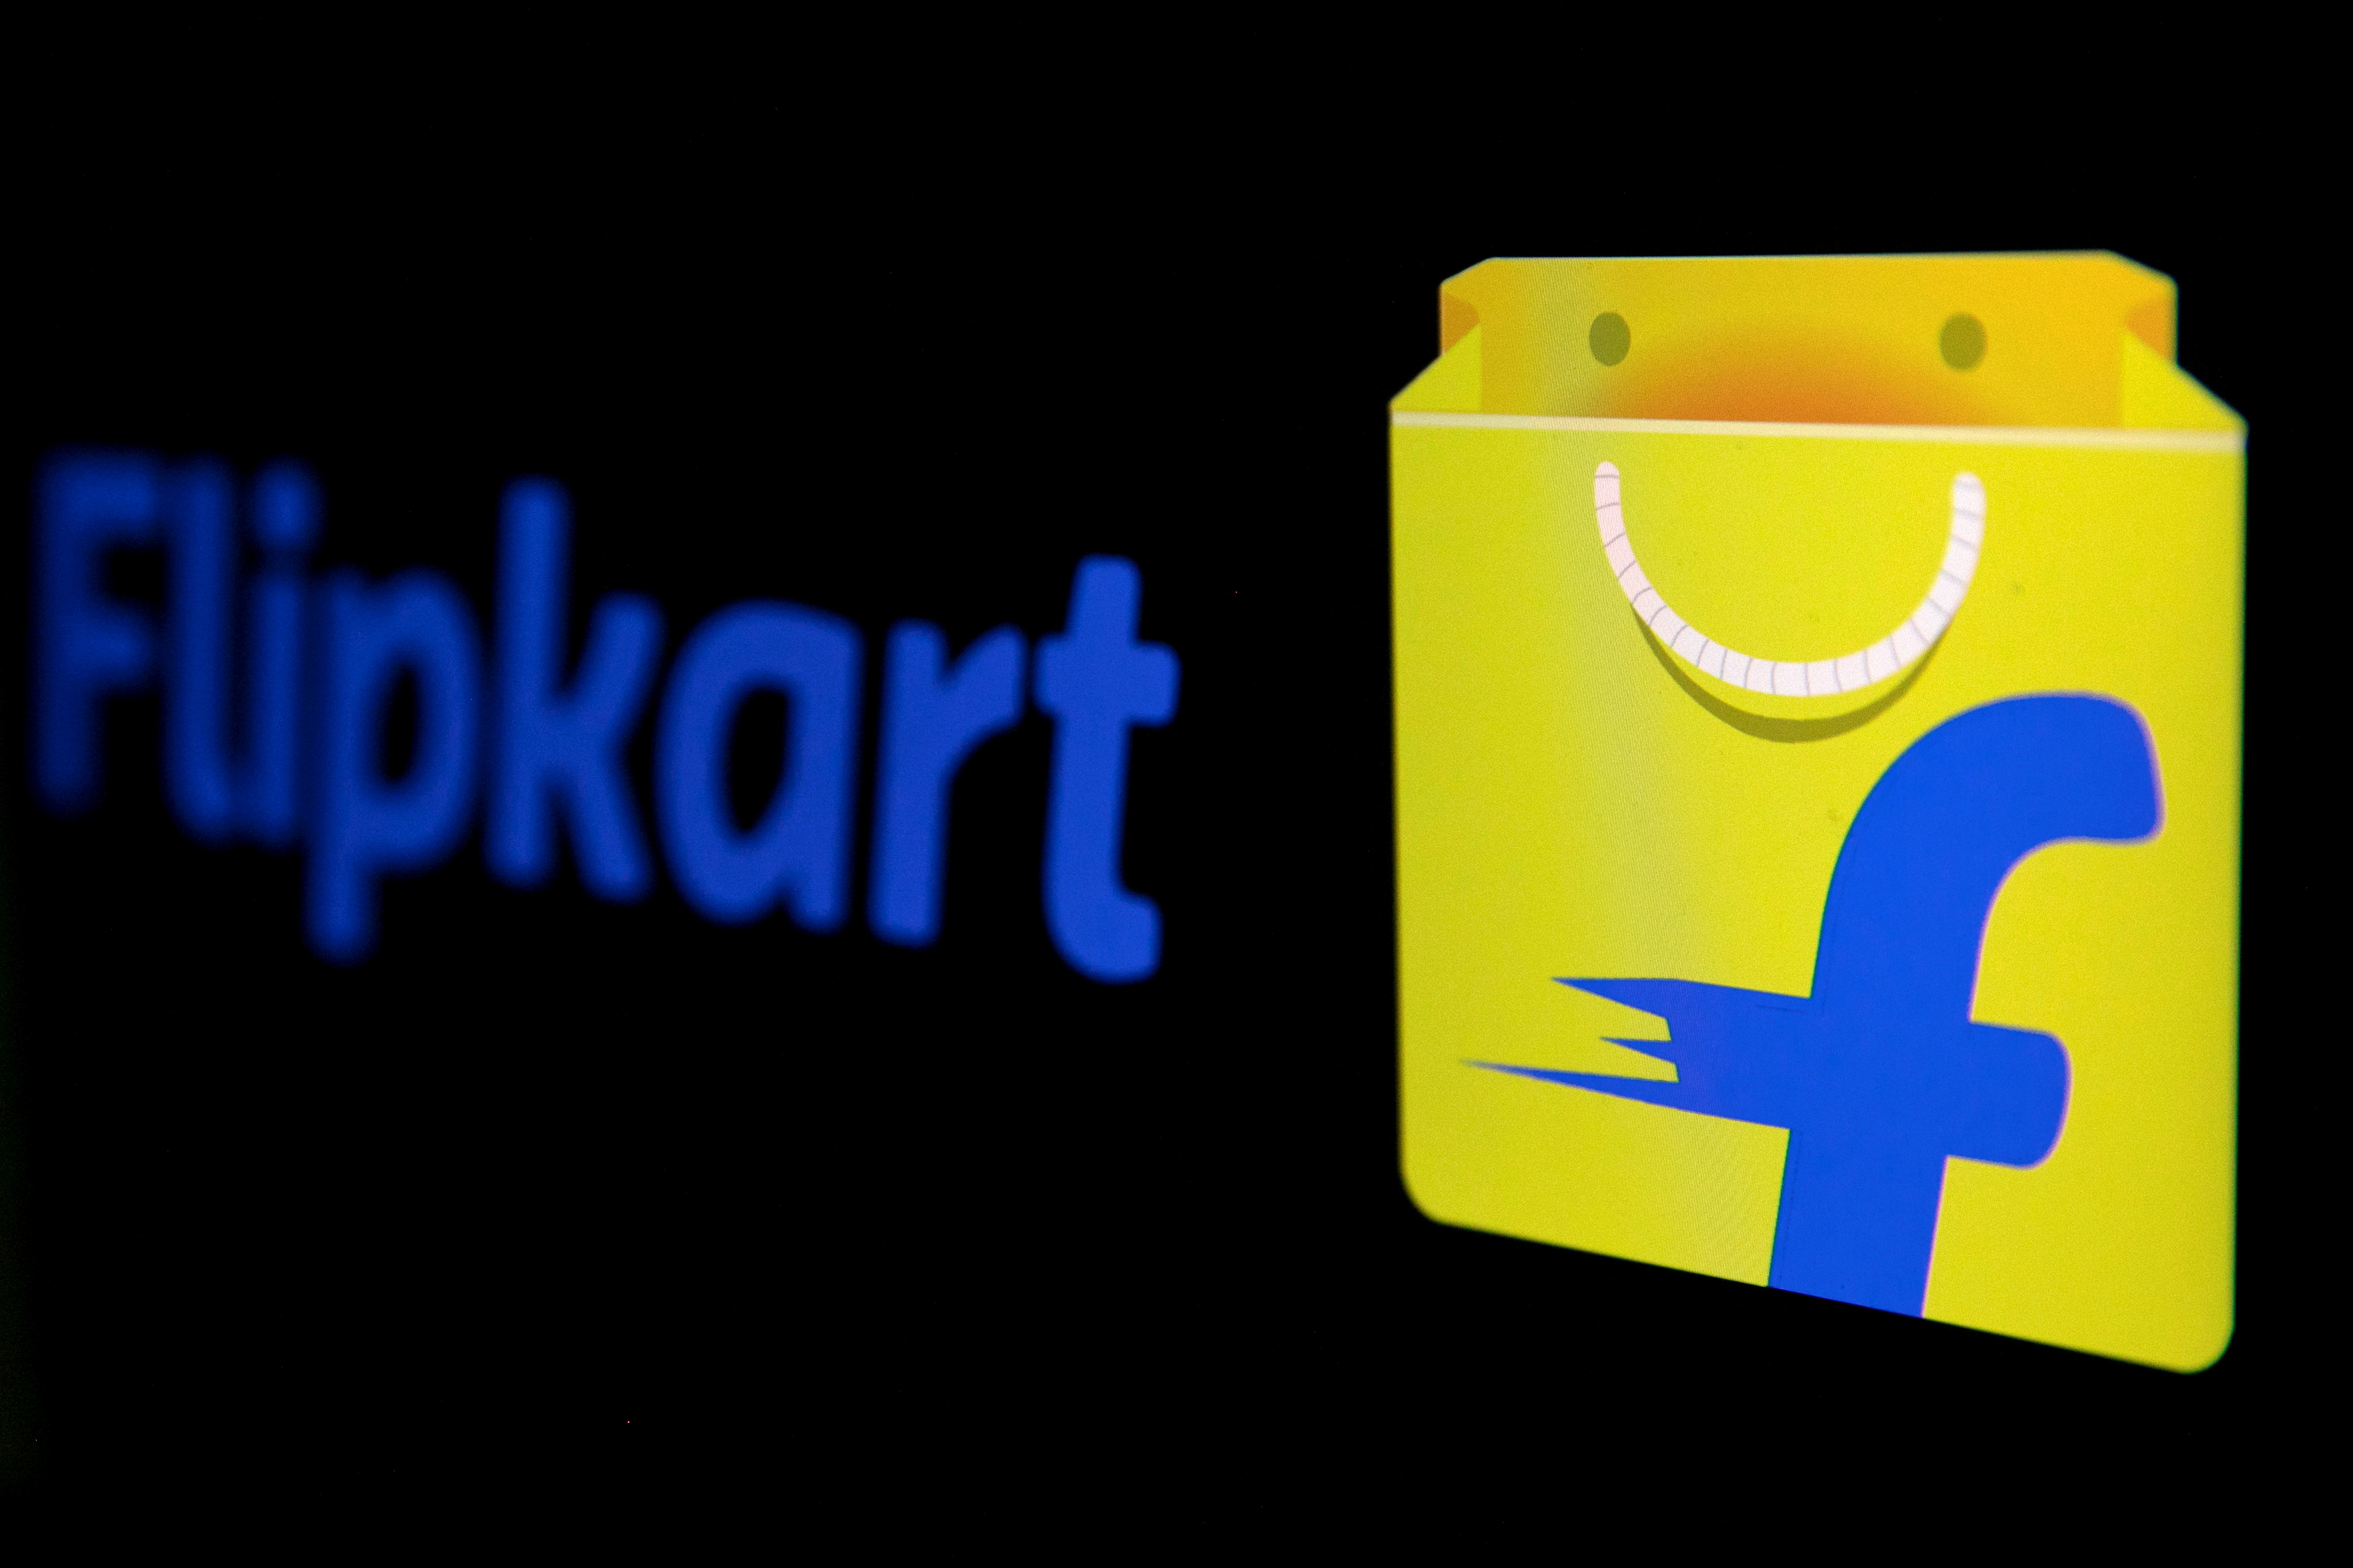 The logo of India's e-commerce firm Flipkart is seen in this illustration picture taken January 29, 2019. REUTERS/Danish Siddiqui/Illustration//File Photo